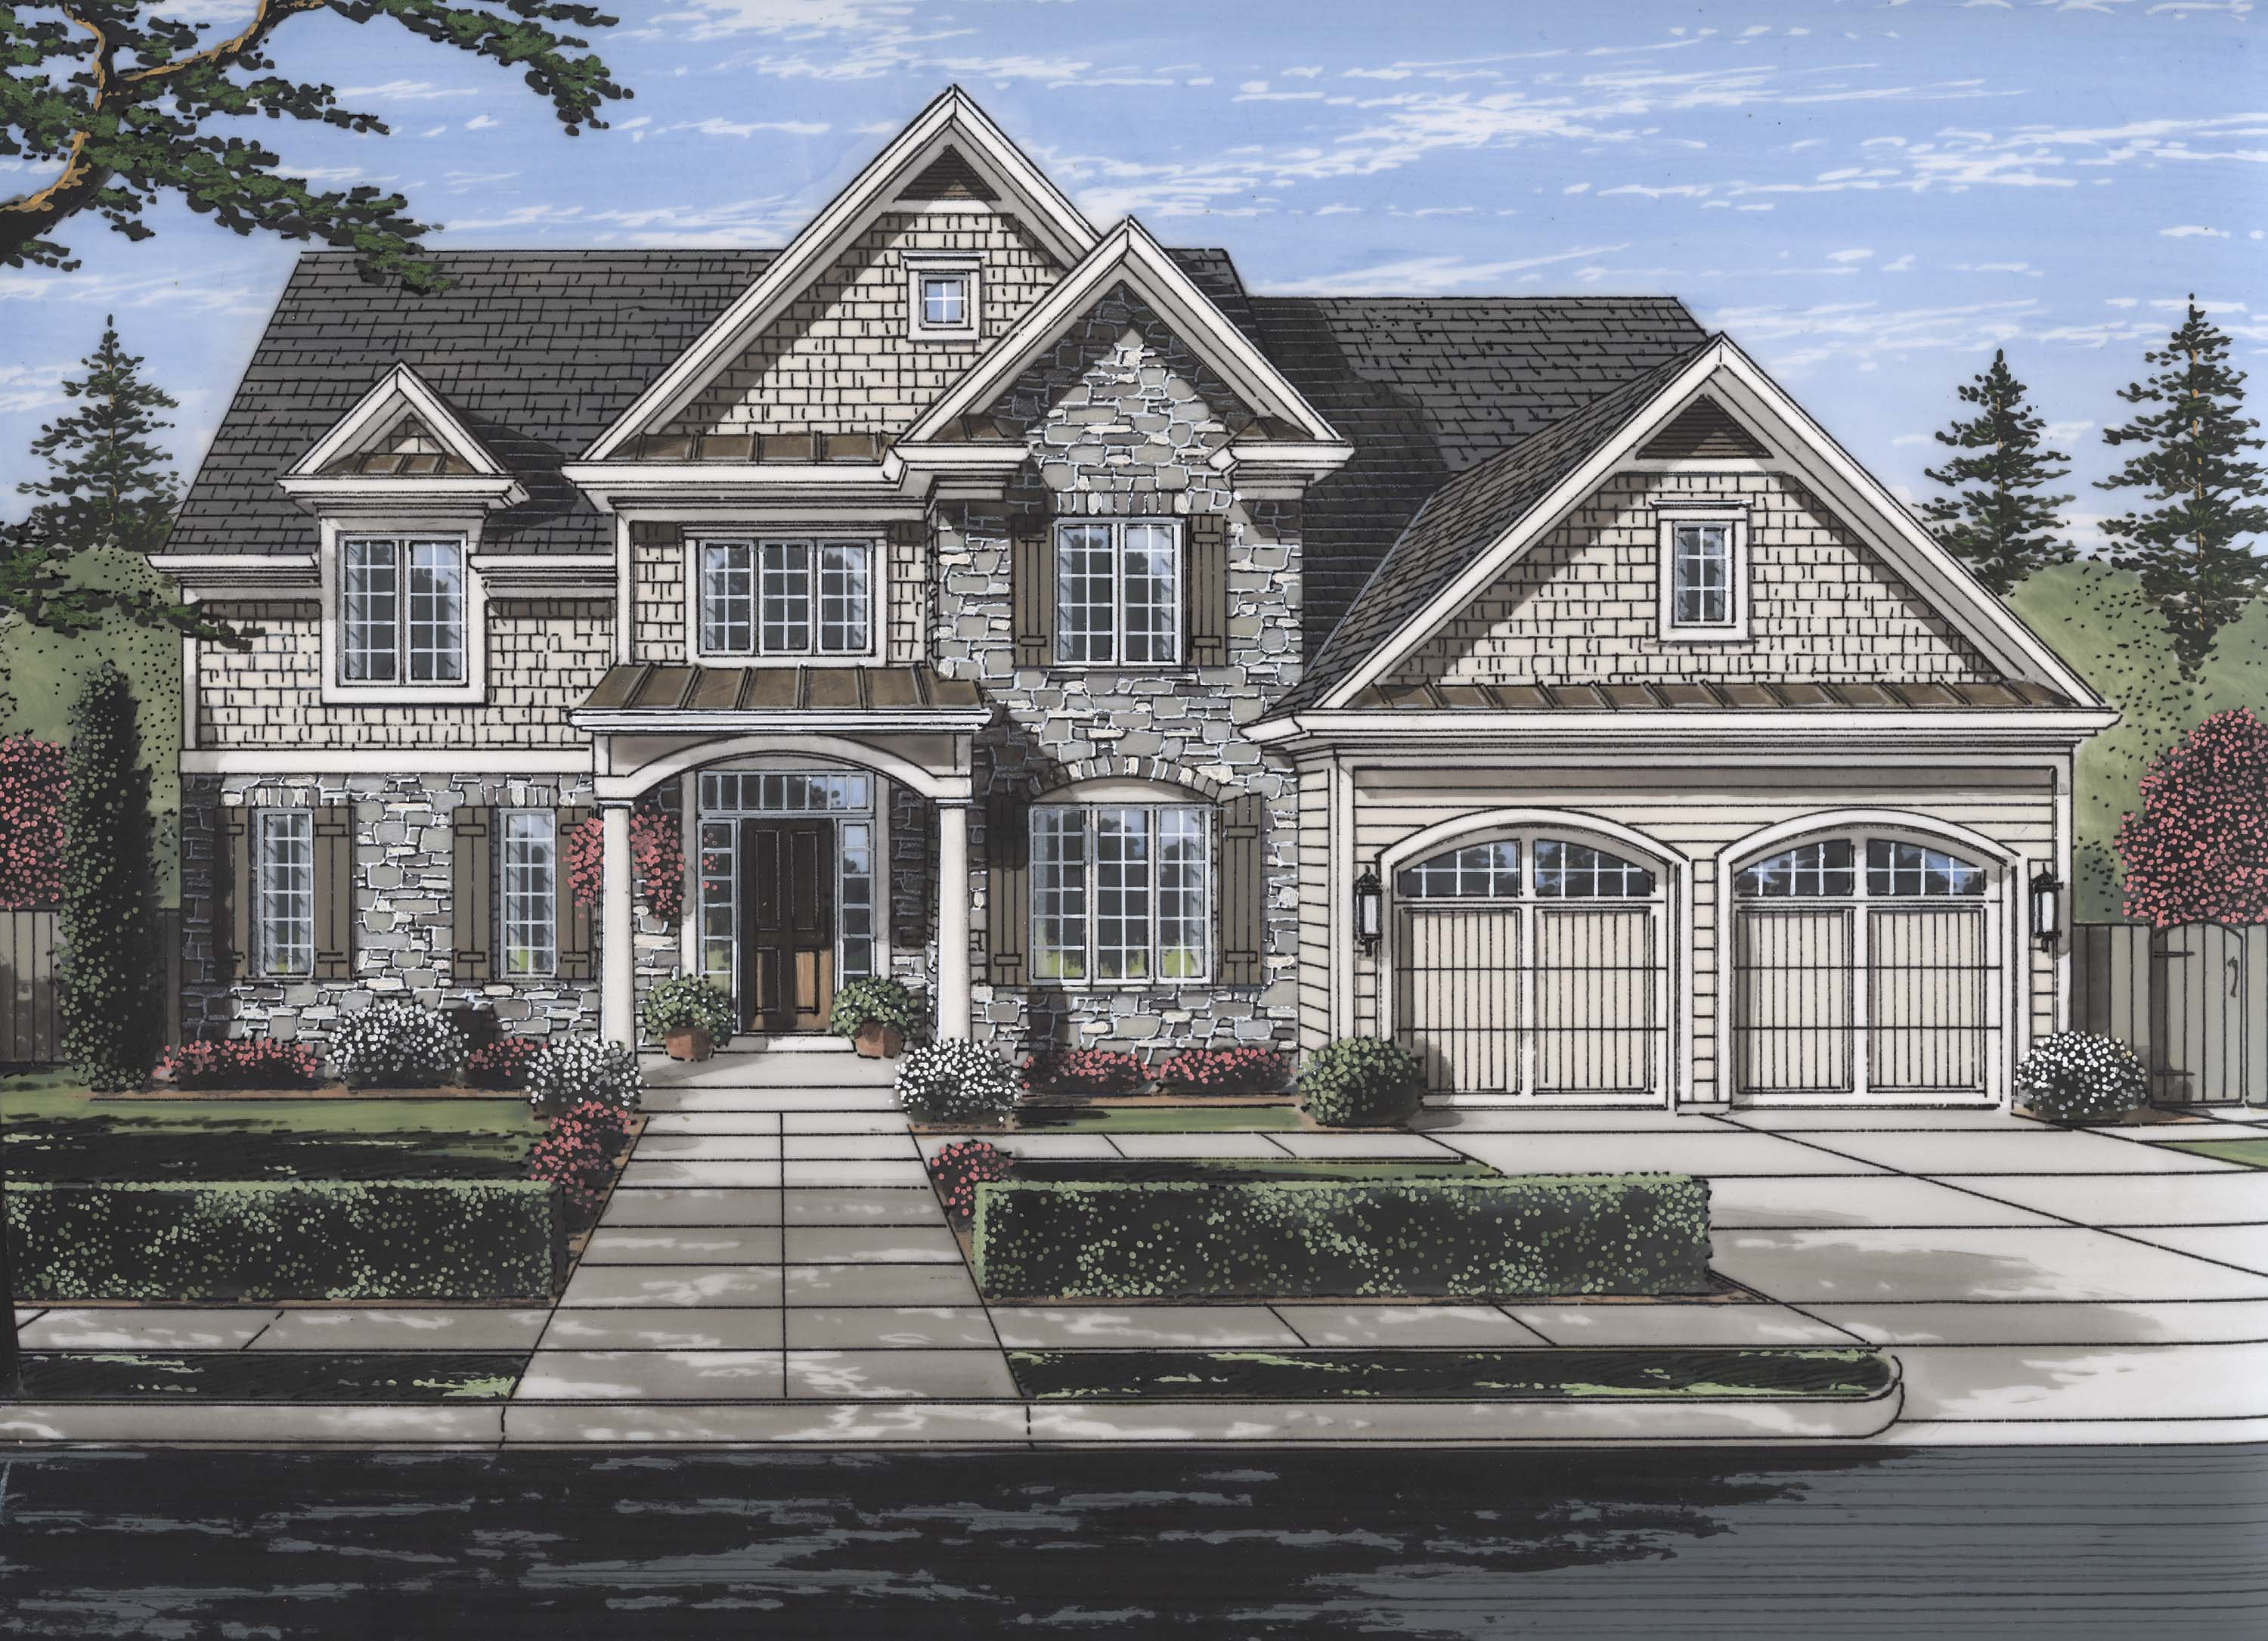 Luxury House Plan #169-1117: 4 Bedrm, 3113 Sq Ft Home